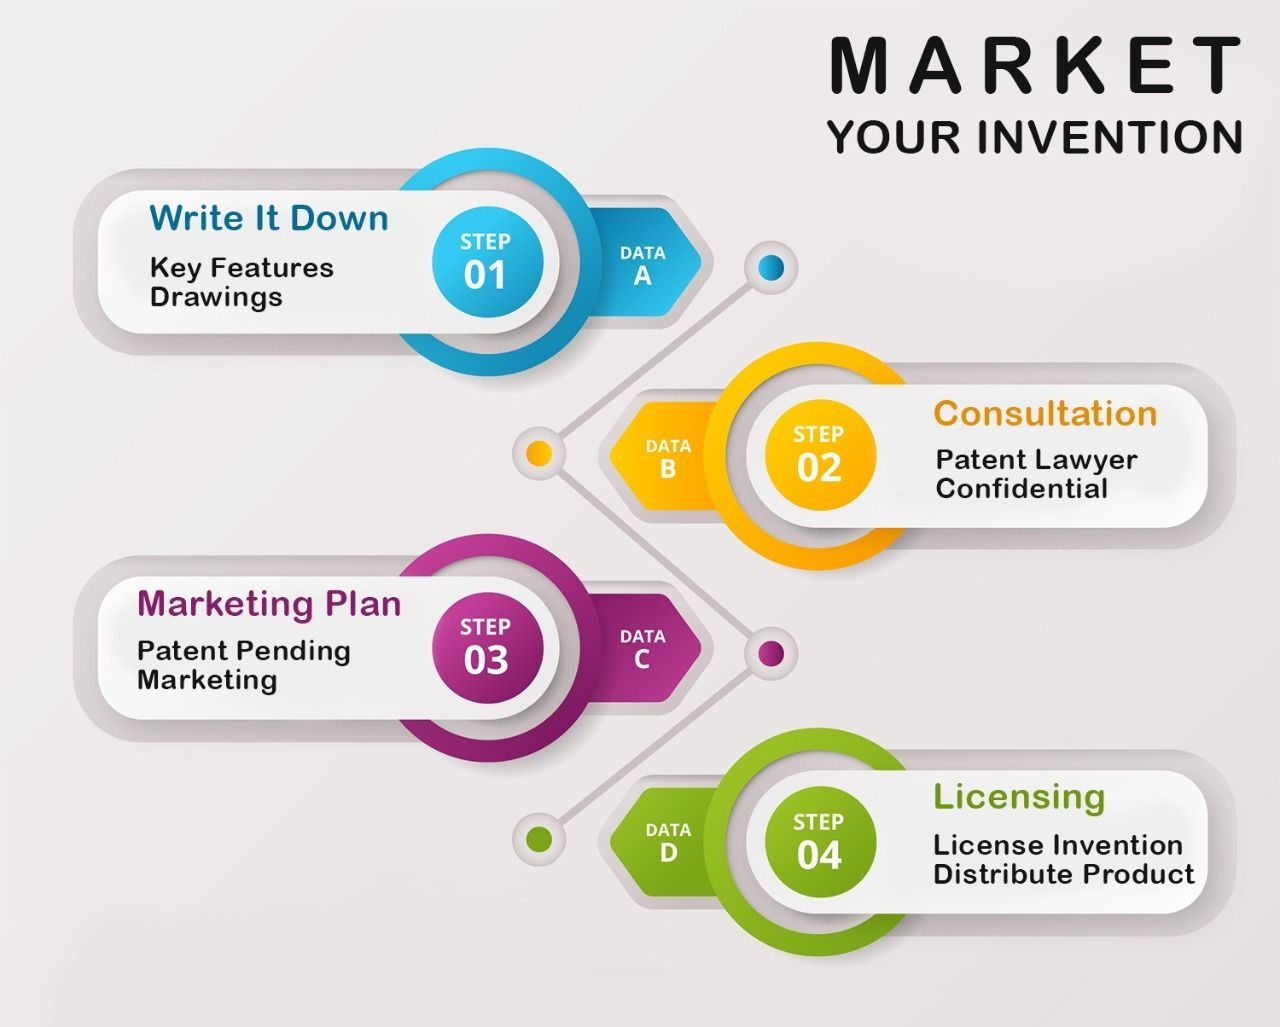 Market Your Invention Marketing Inventions Marketing Plan